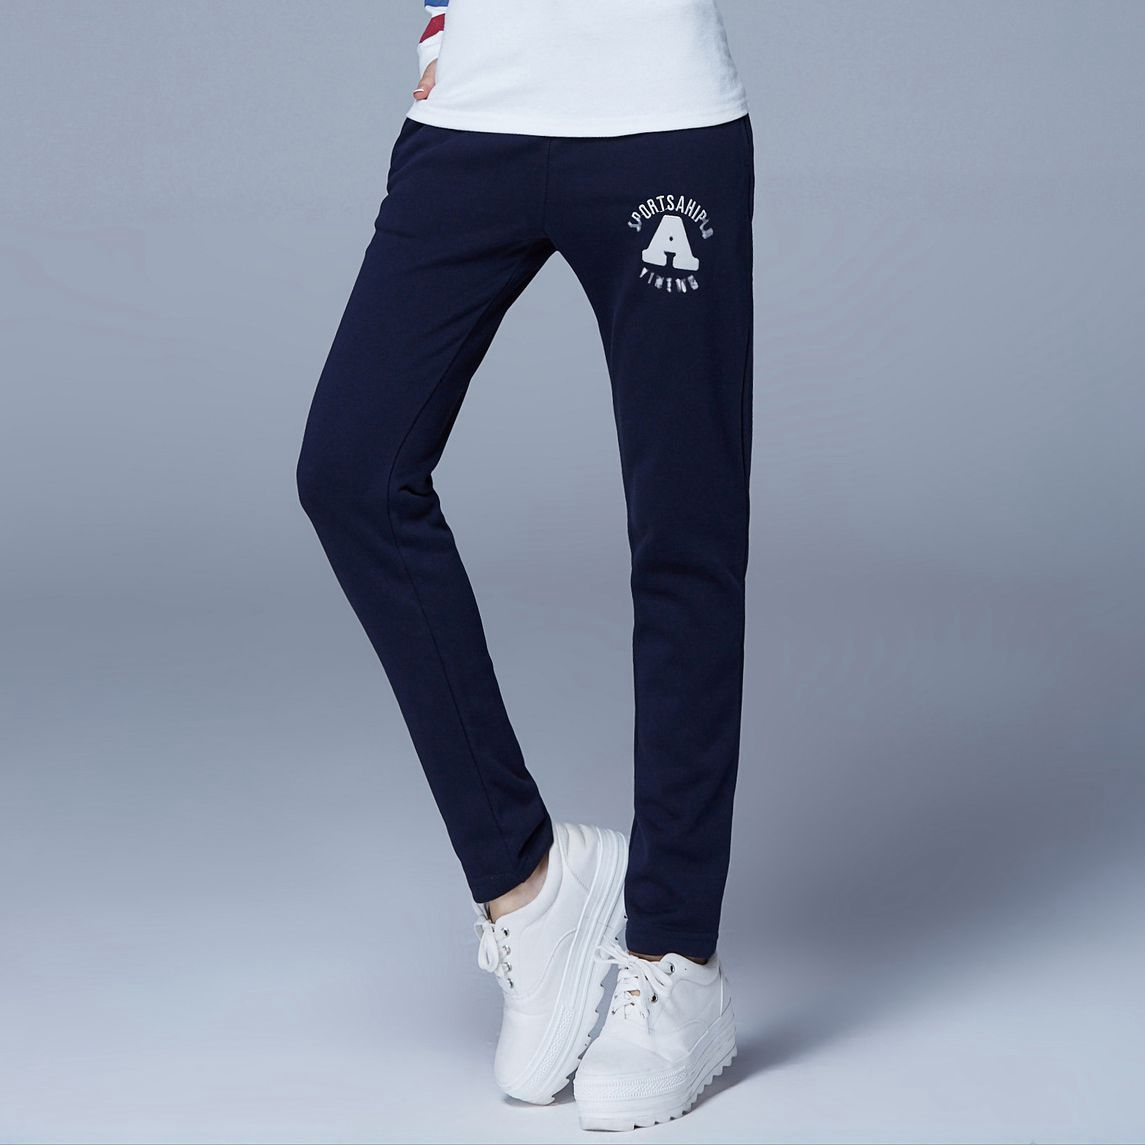 Find loose pants at ShopStyle. Shop the latest collection of loose pants from the most popular stores - all in one place.